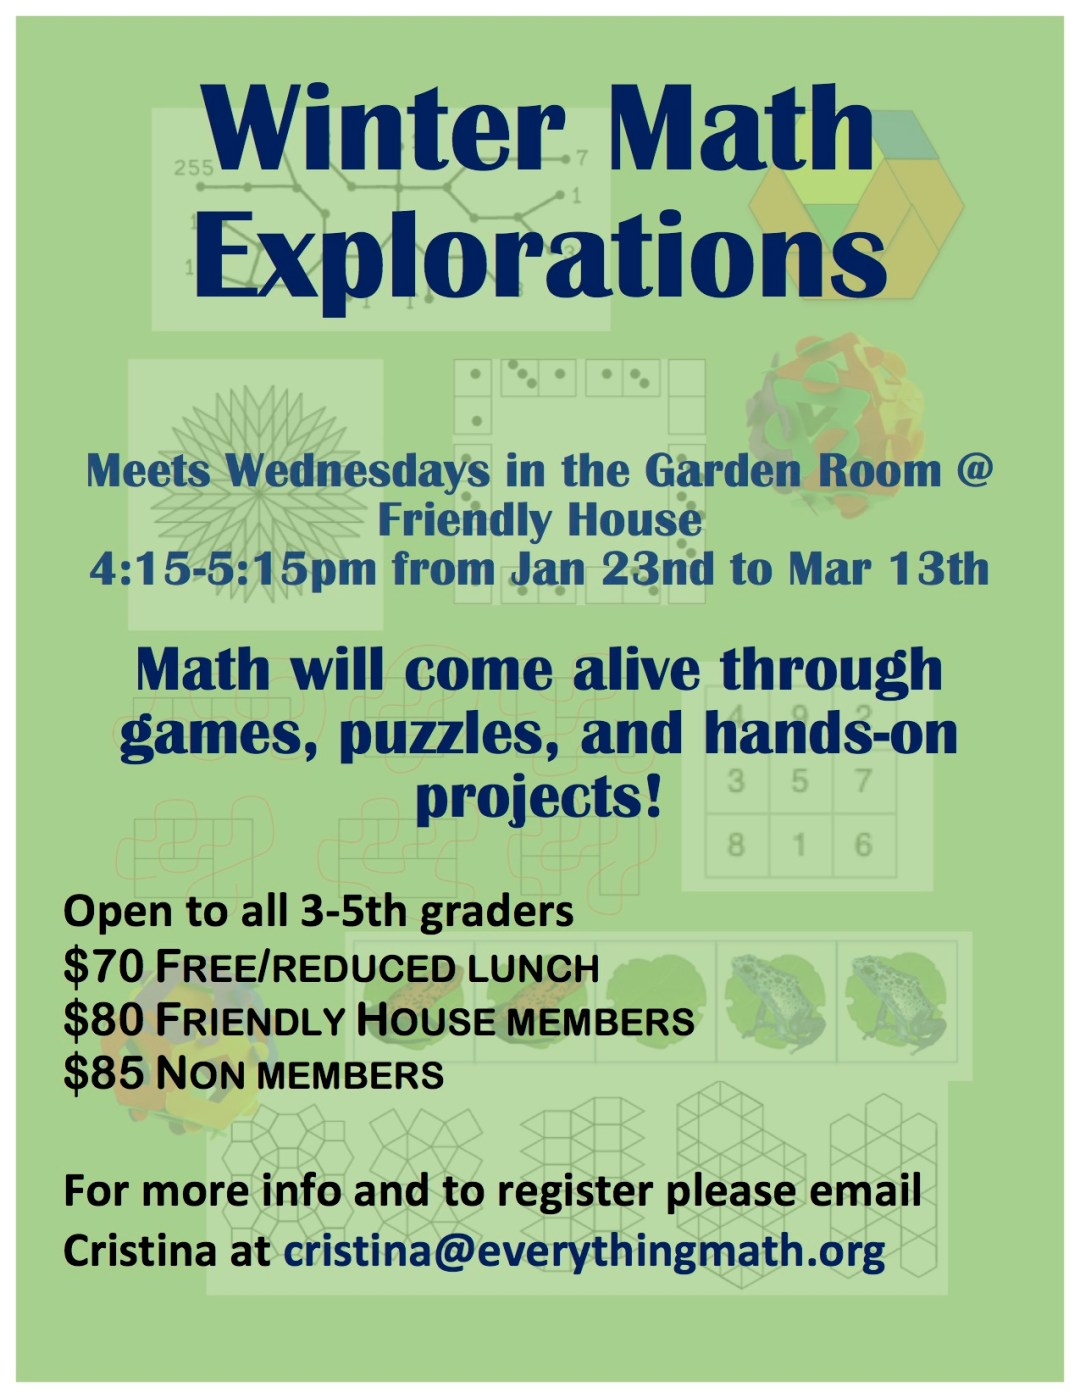 Flier- Winter 3rd-5th Math Explorations